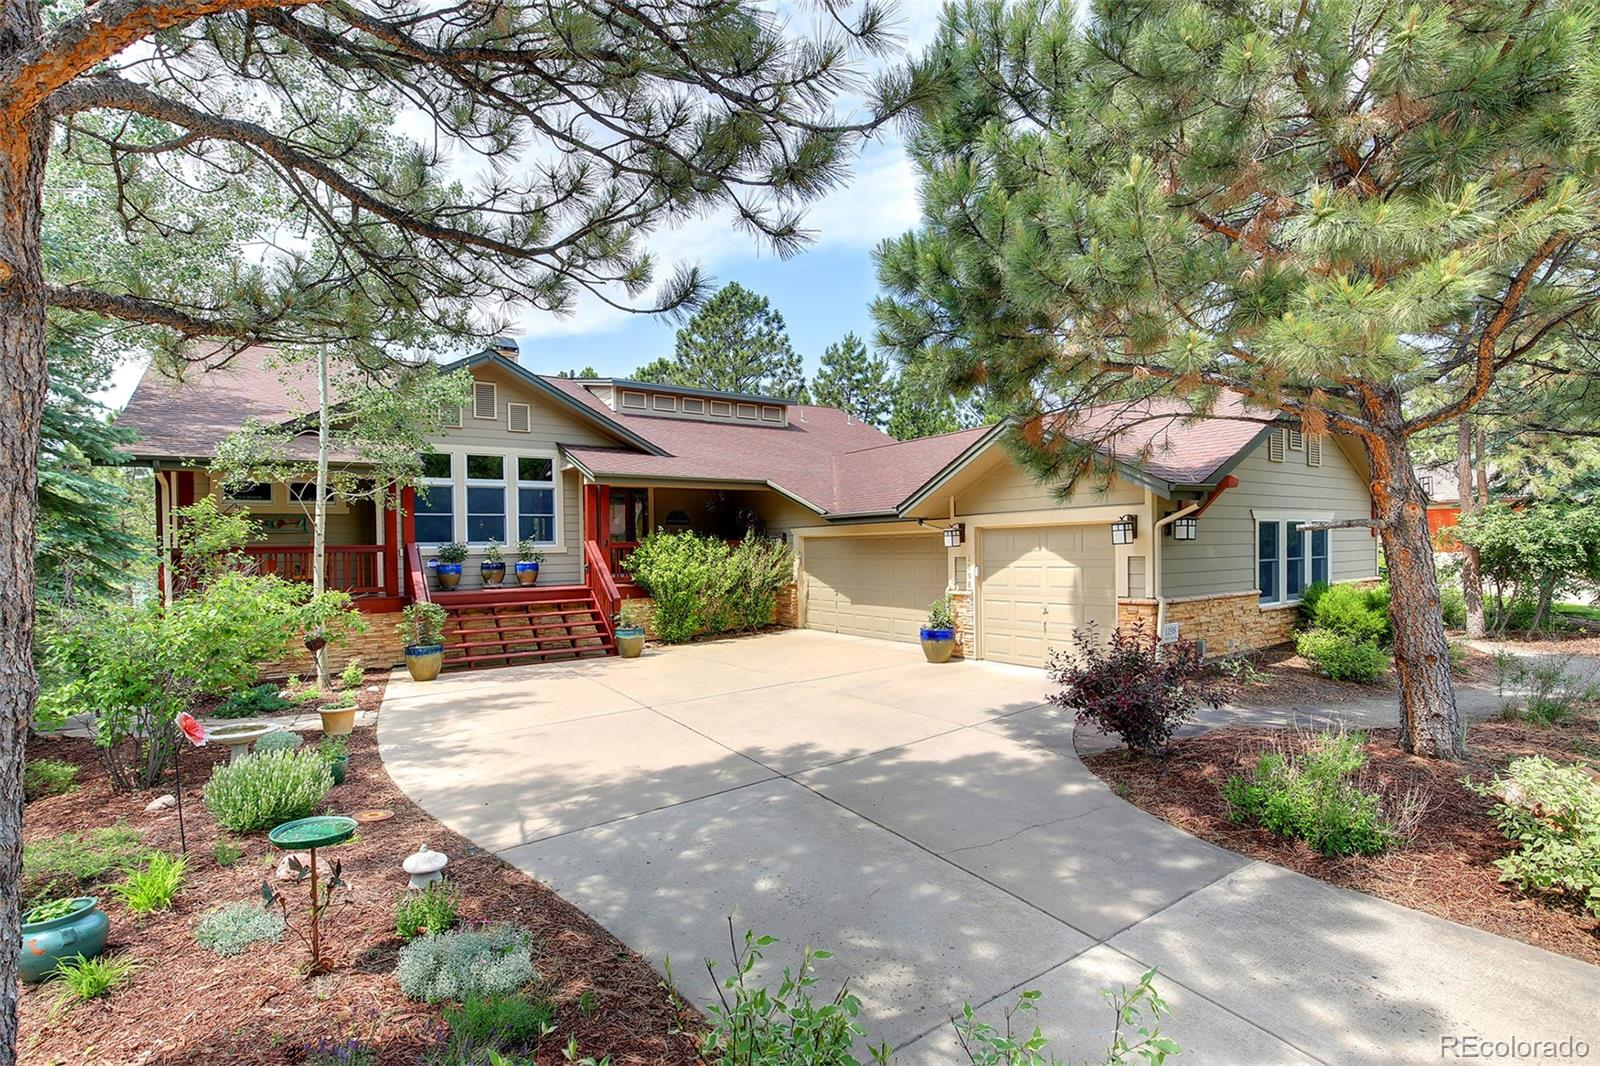 MLS# 8150320 - 1 - 1198 Forest Trails Drive, Castle Pines, CO 80108